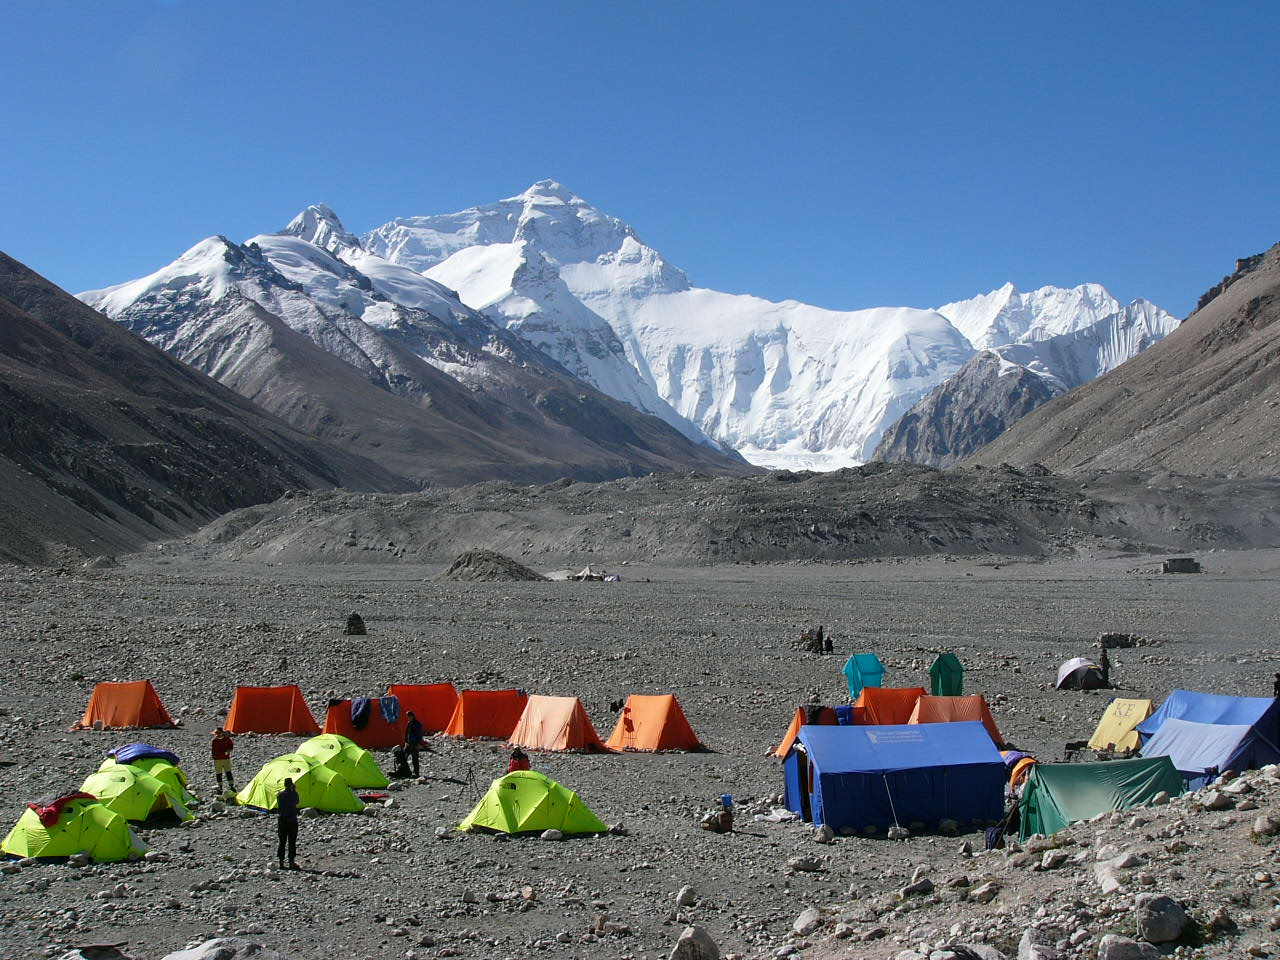 Journey to the summit of the world – Mt. Everest